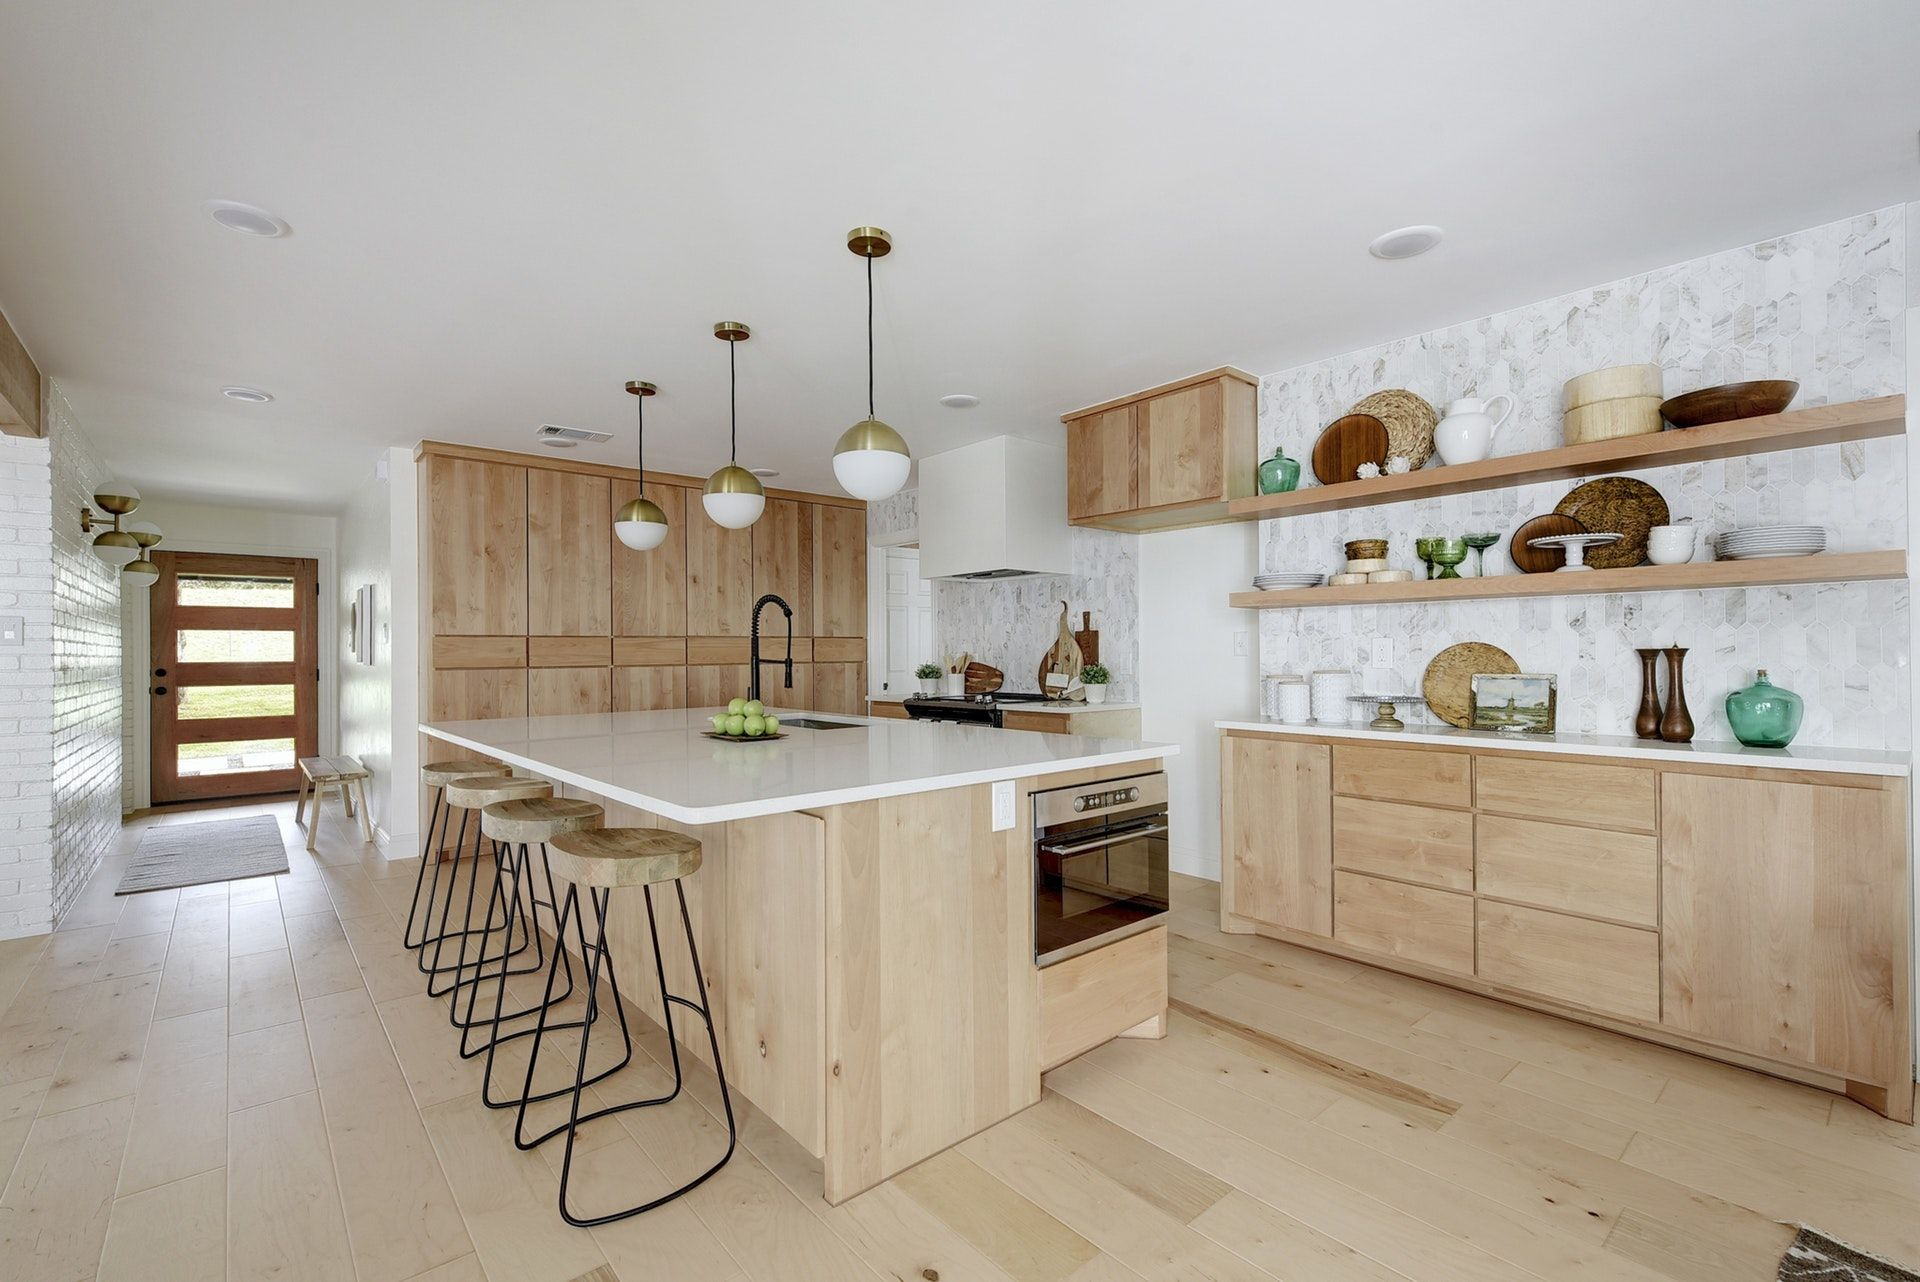 Open Kitchen With Flat Front Natural Alder Wood Cabinets Light Wood Floors Globe Pendants With Light Wood Kitchens Natural Wood Kitchen Wood Kitchen Cabinets